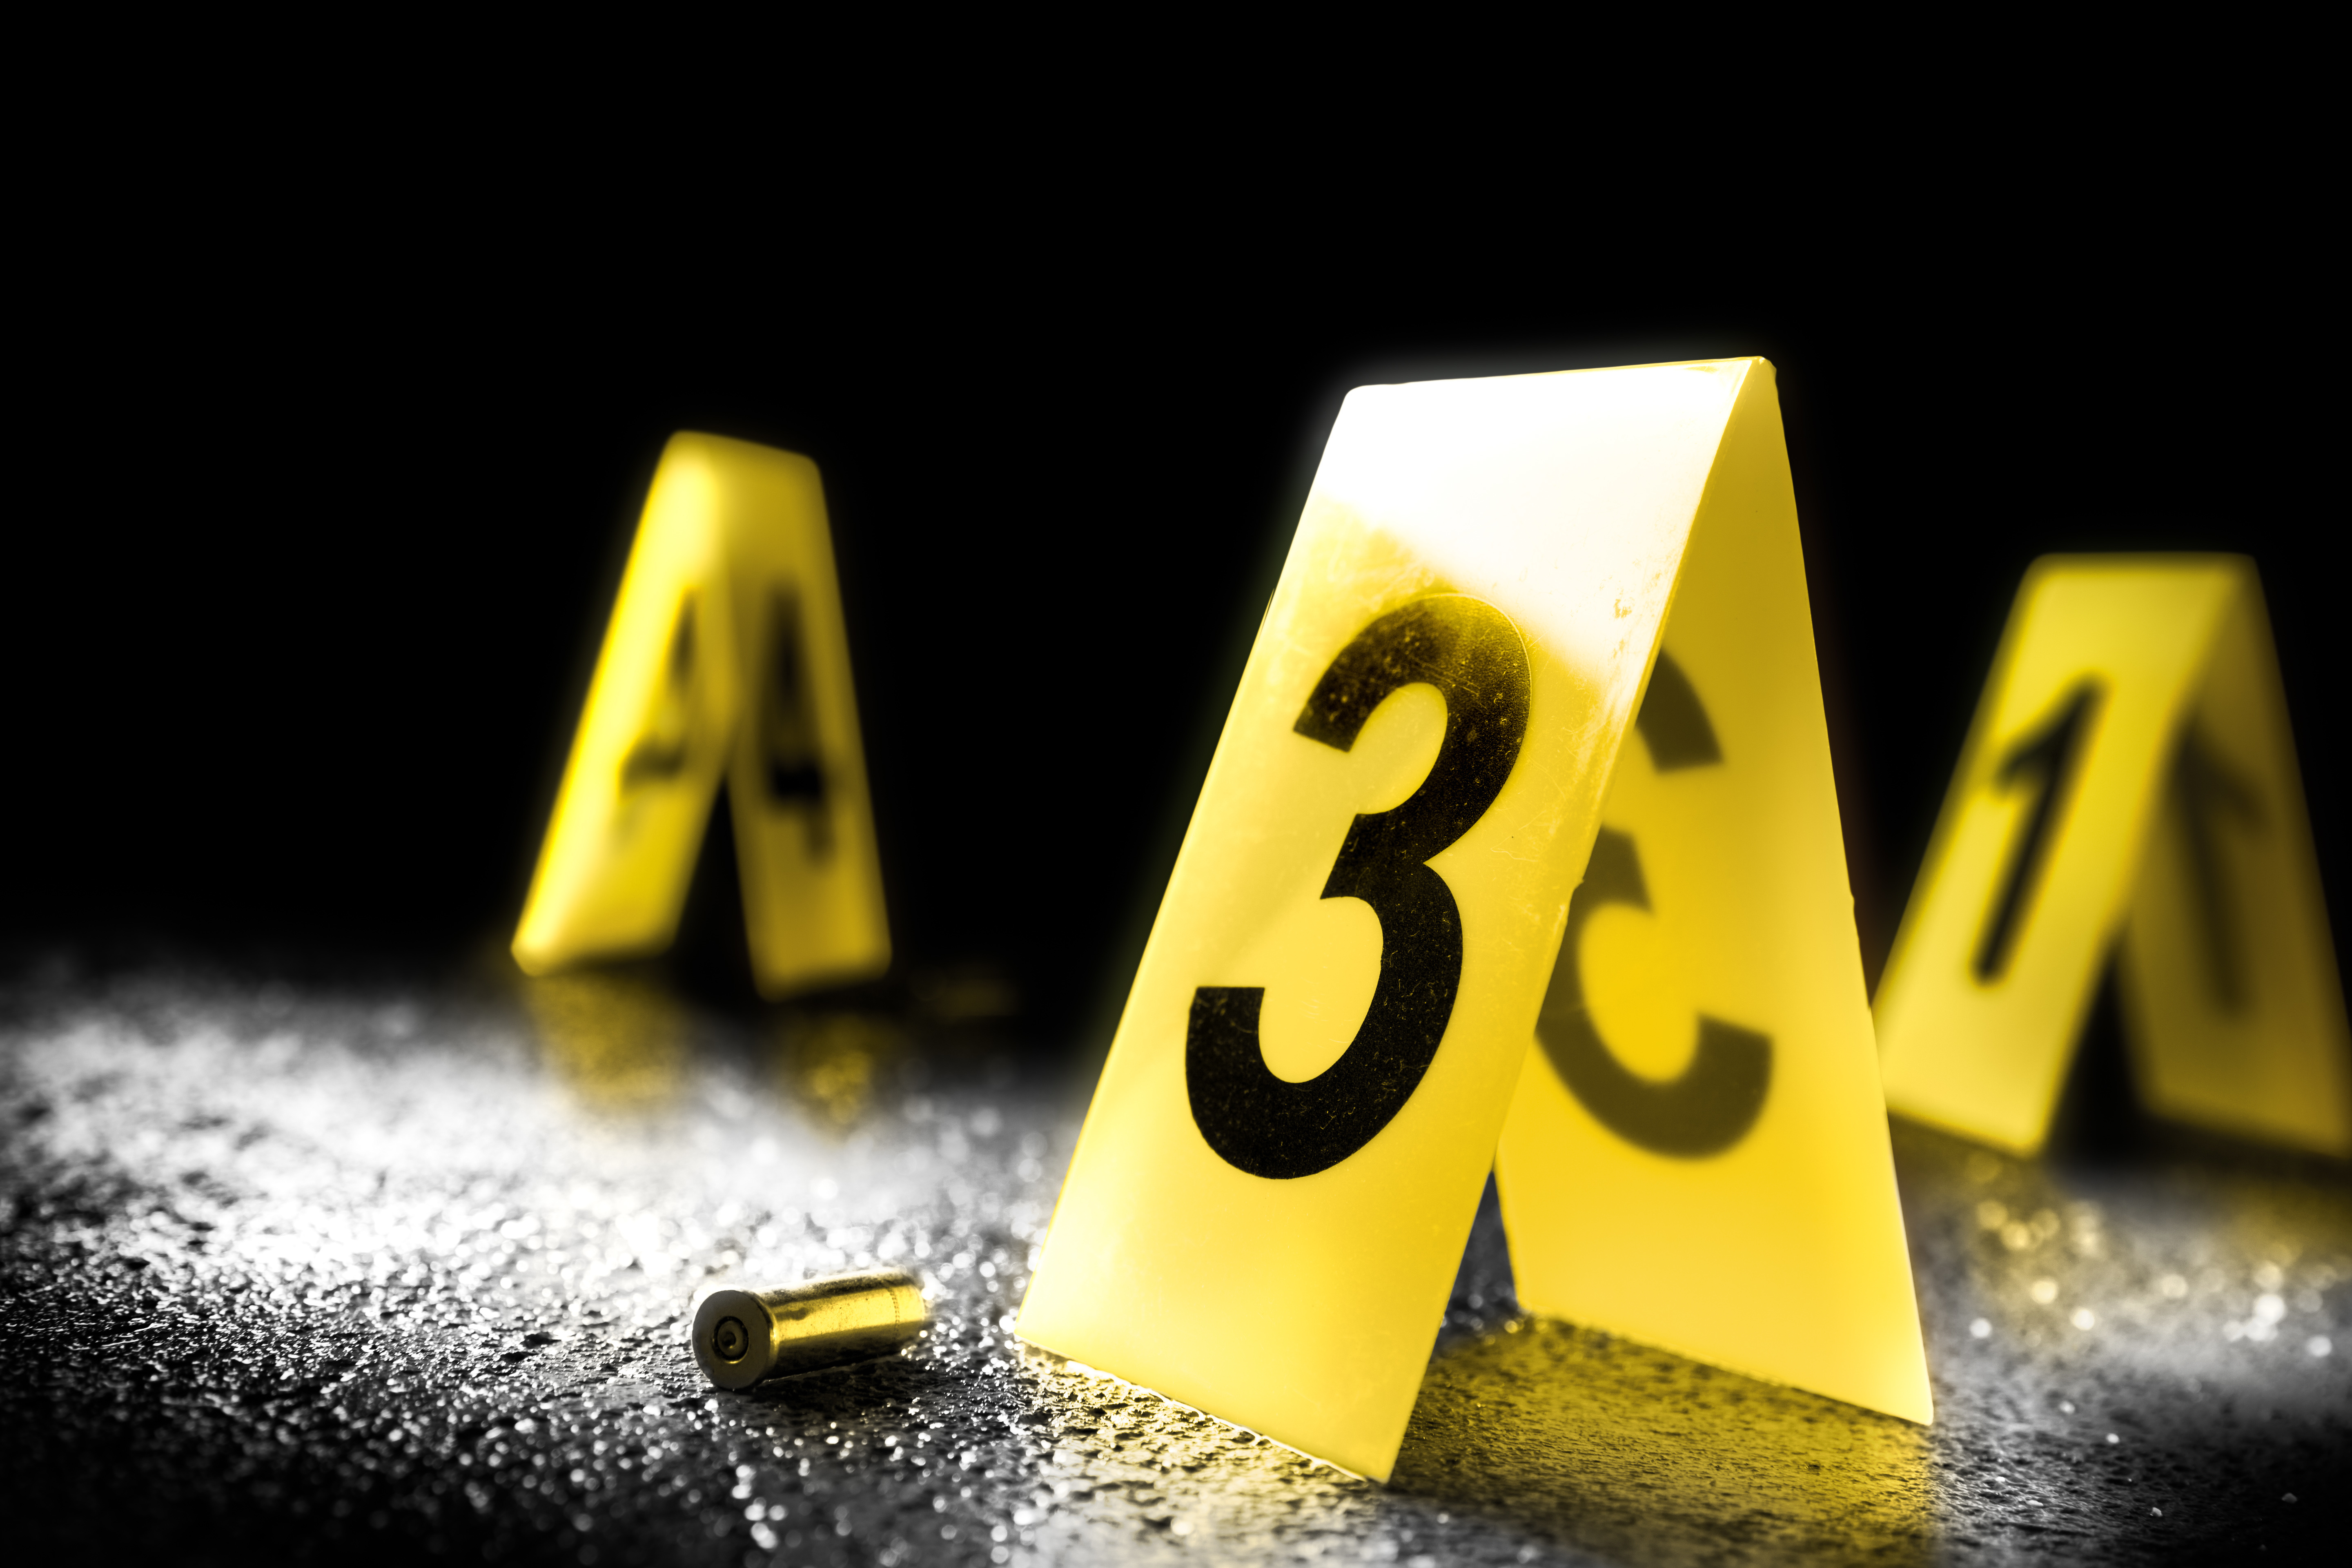 Three people were shot June 7, 2019, in the 6200 block of South Justine Street.